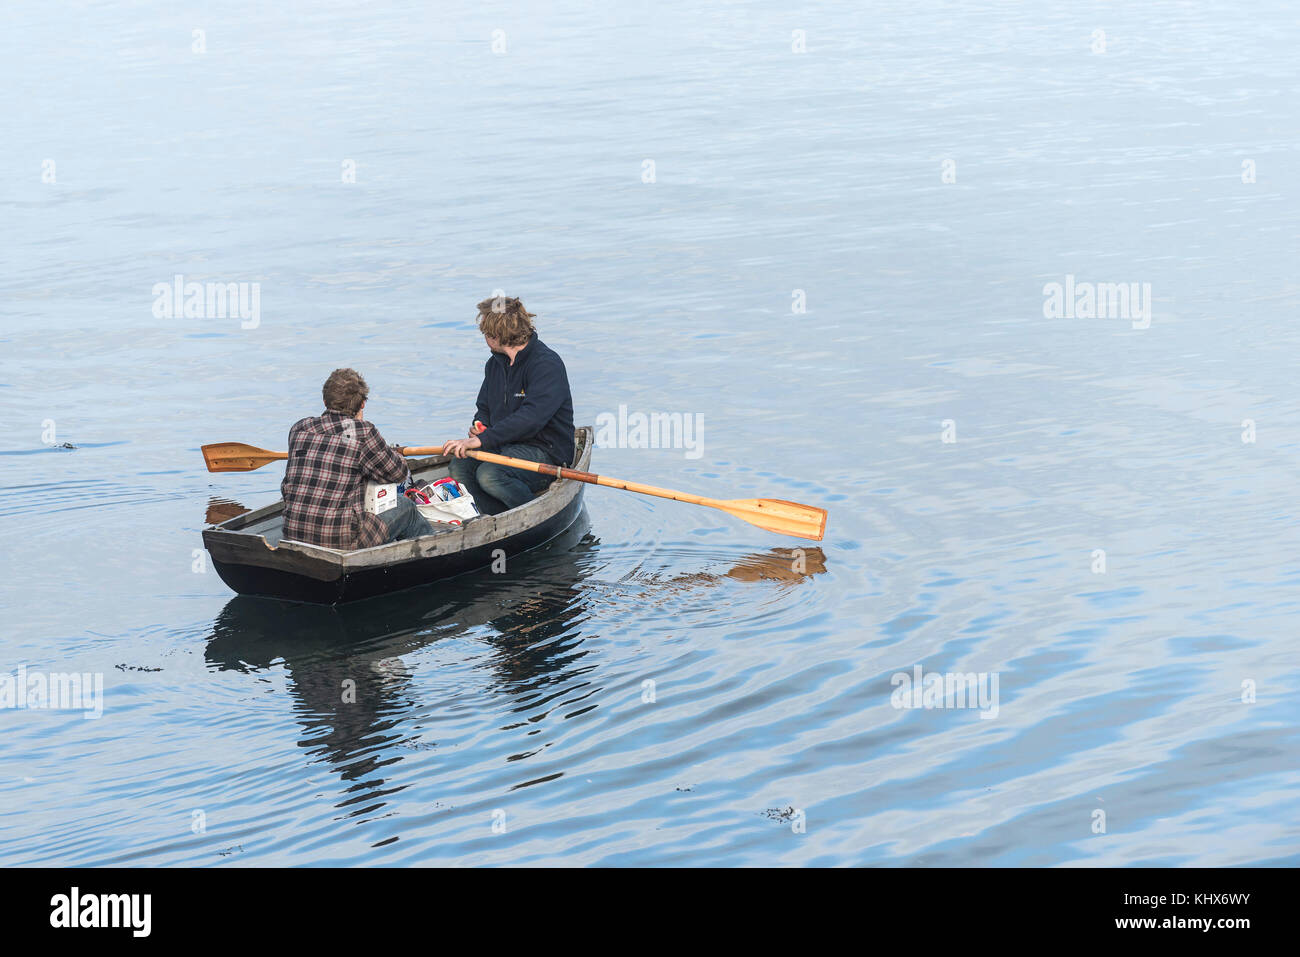 Two men people in a rowing boat. - Stock Image